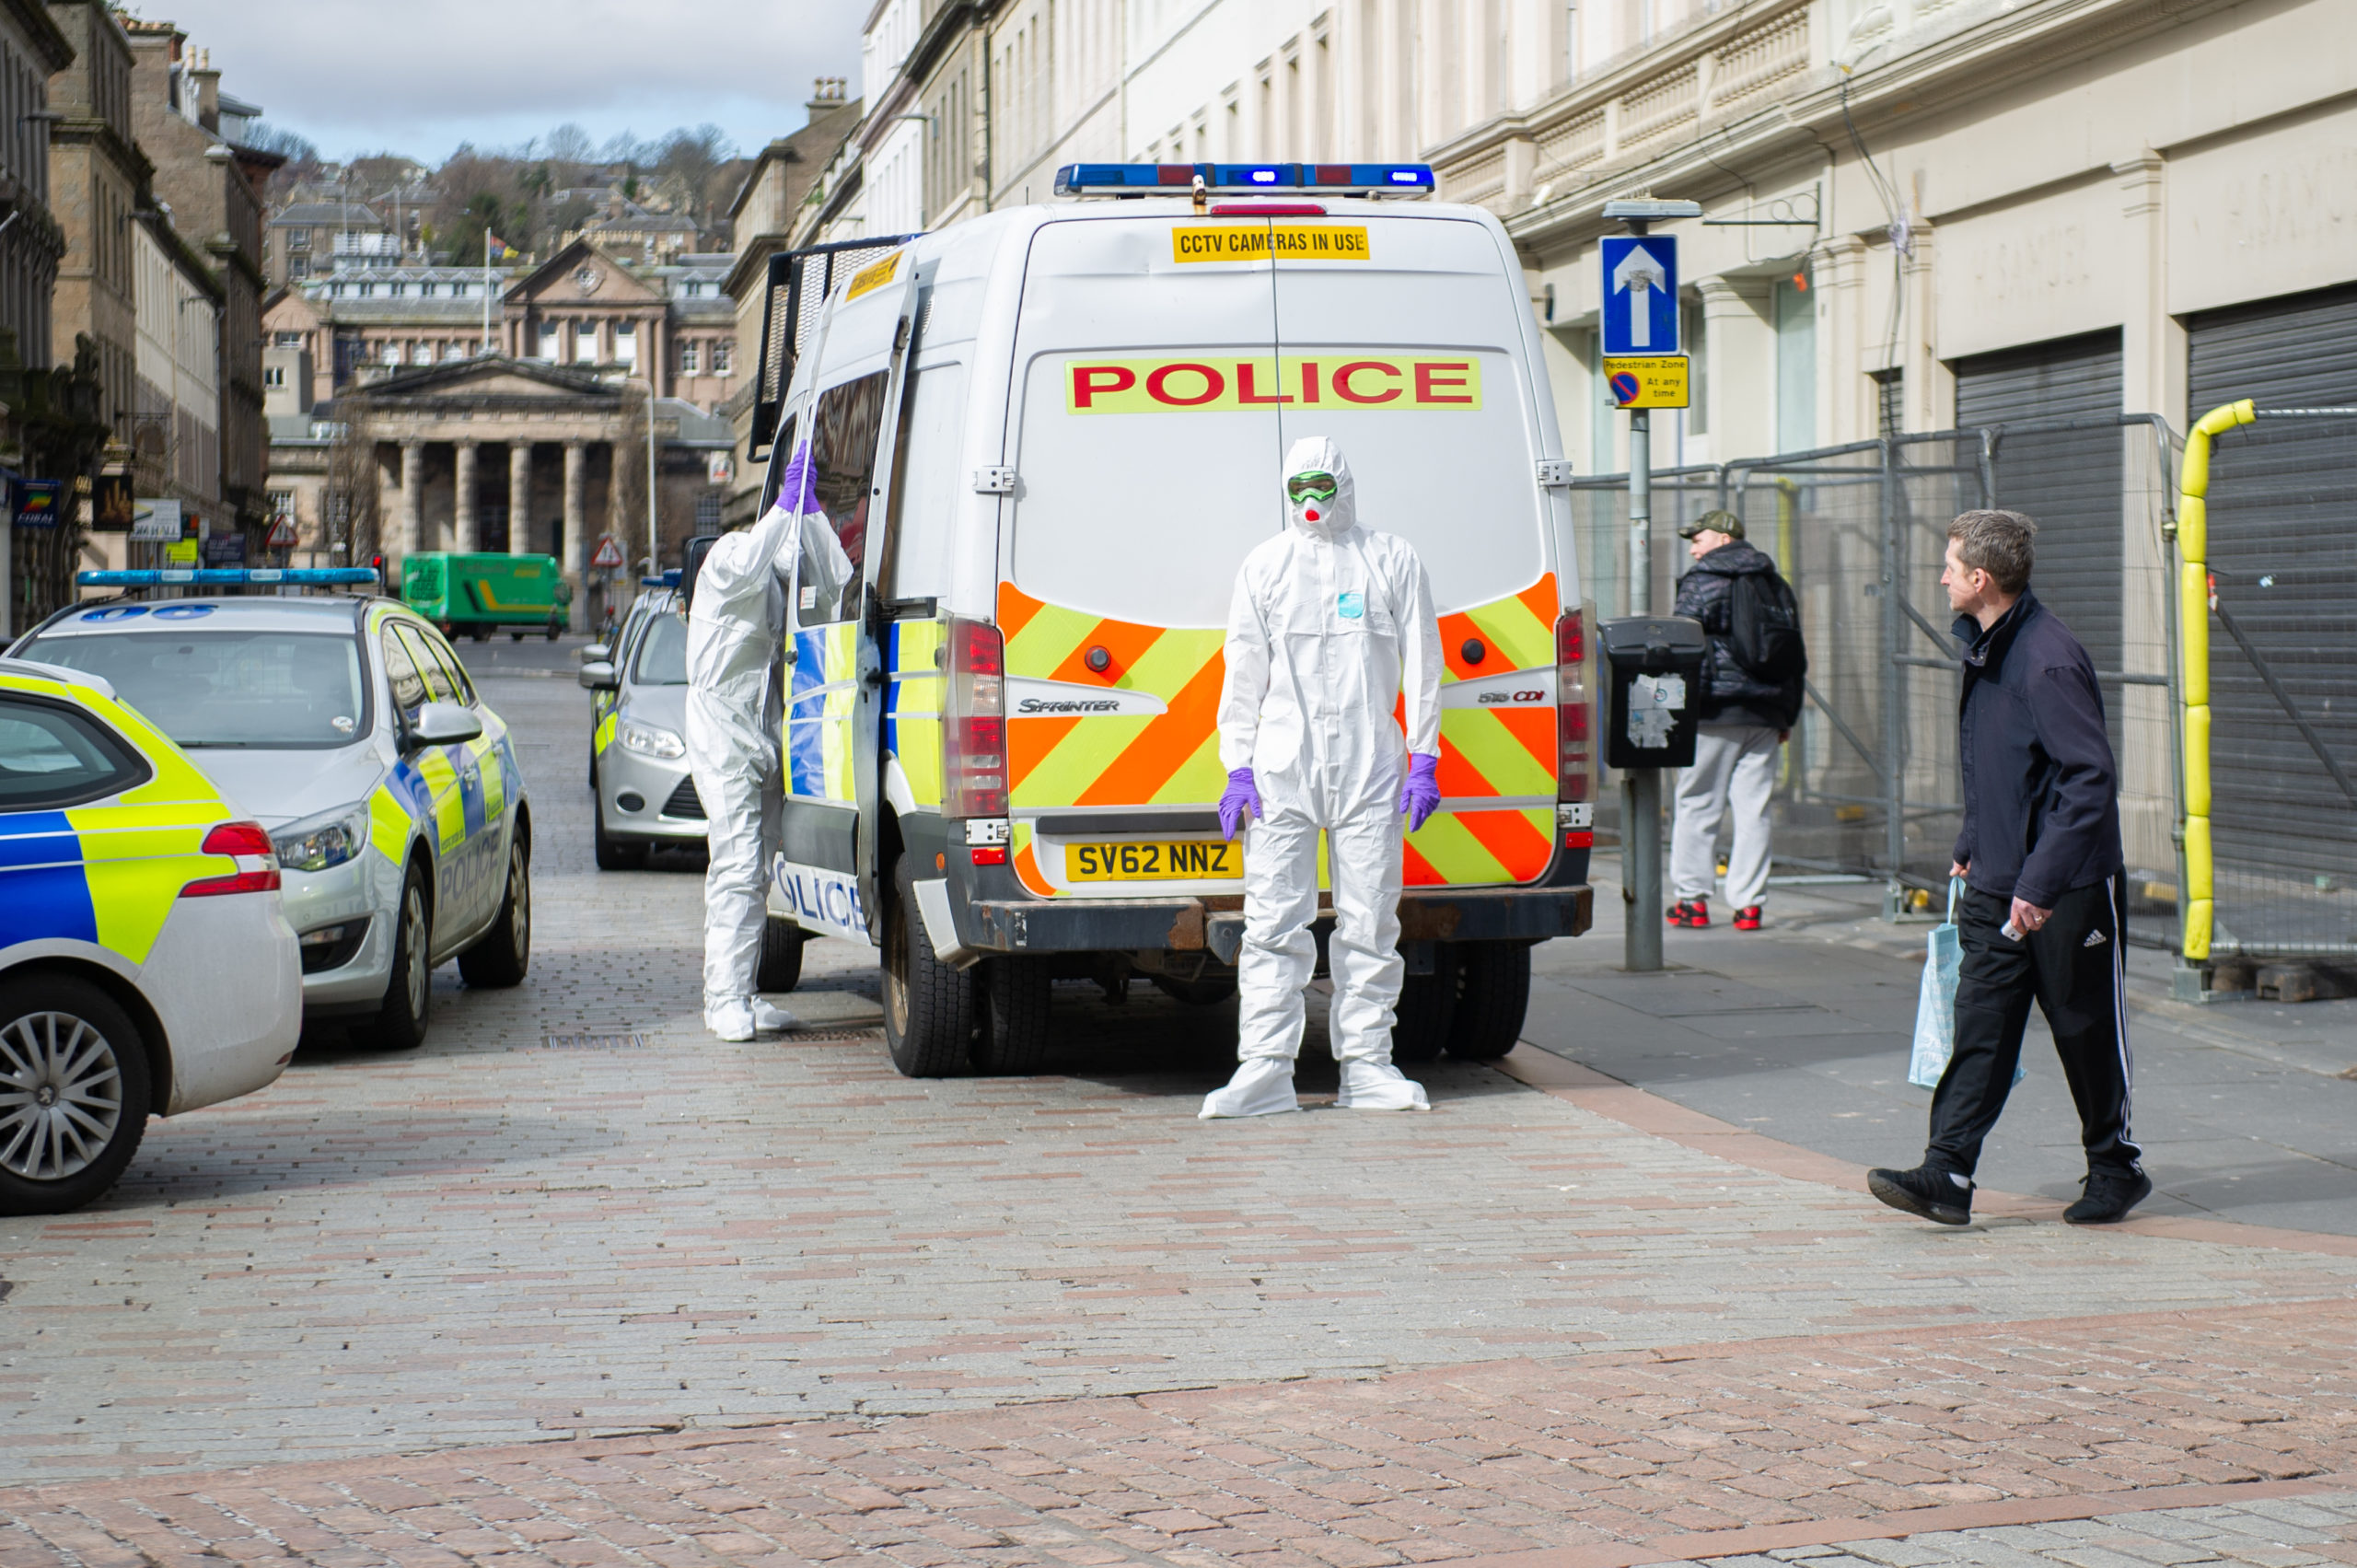 Police in hazmat suits were called to Reform Street. (Picture: DCT Media/Kim Cessford_